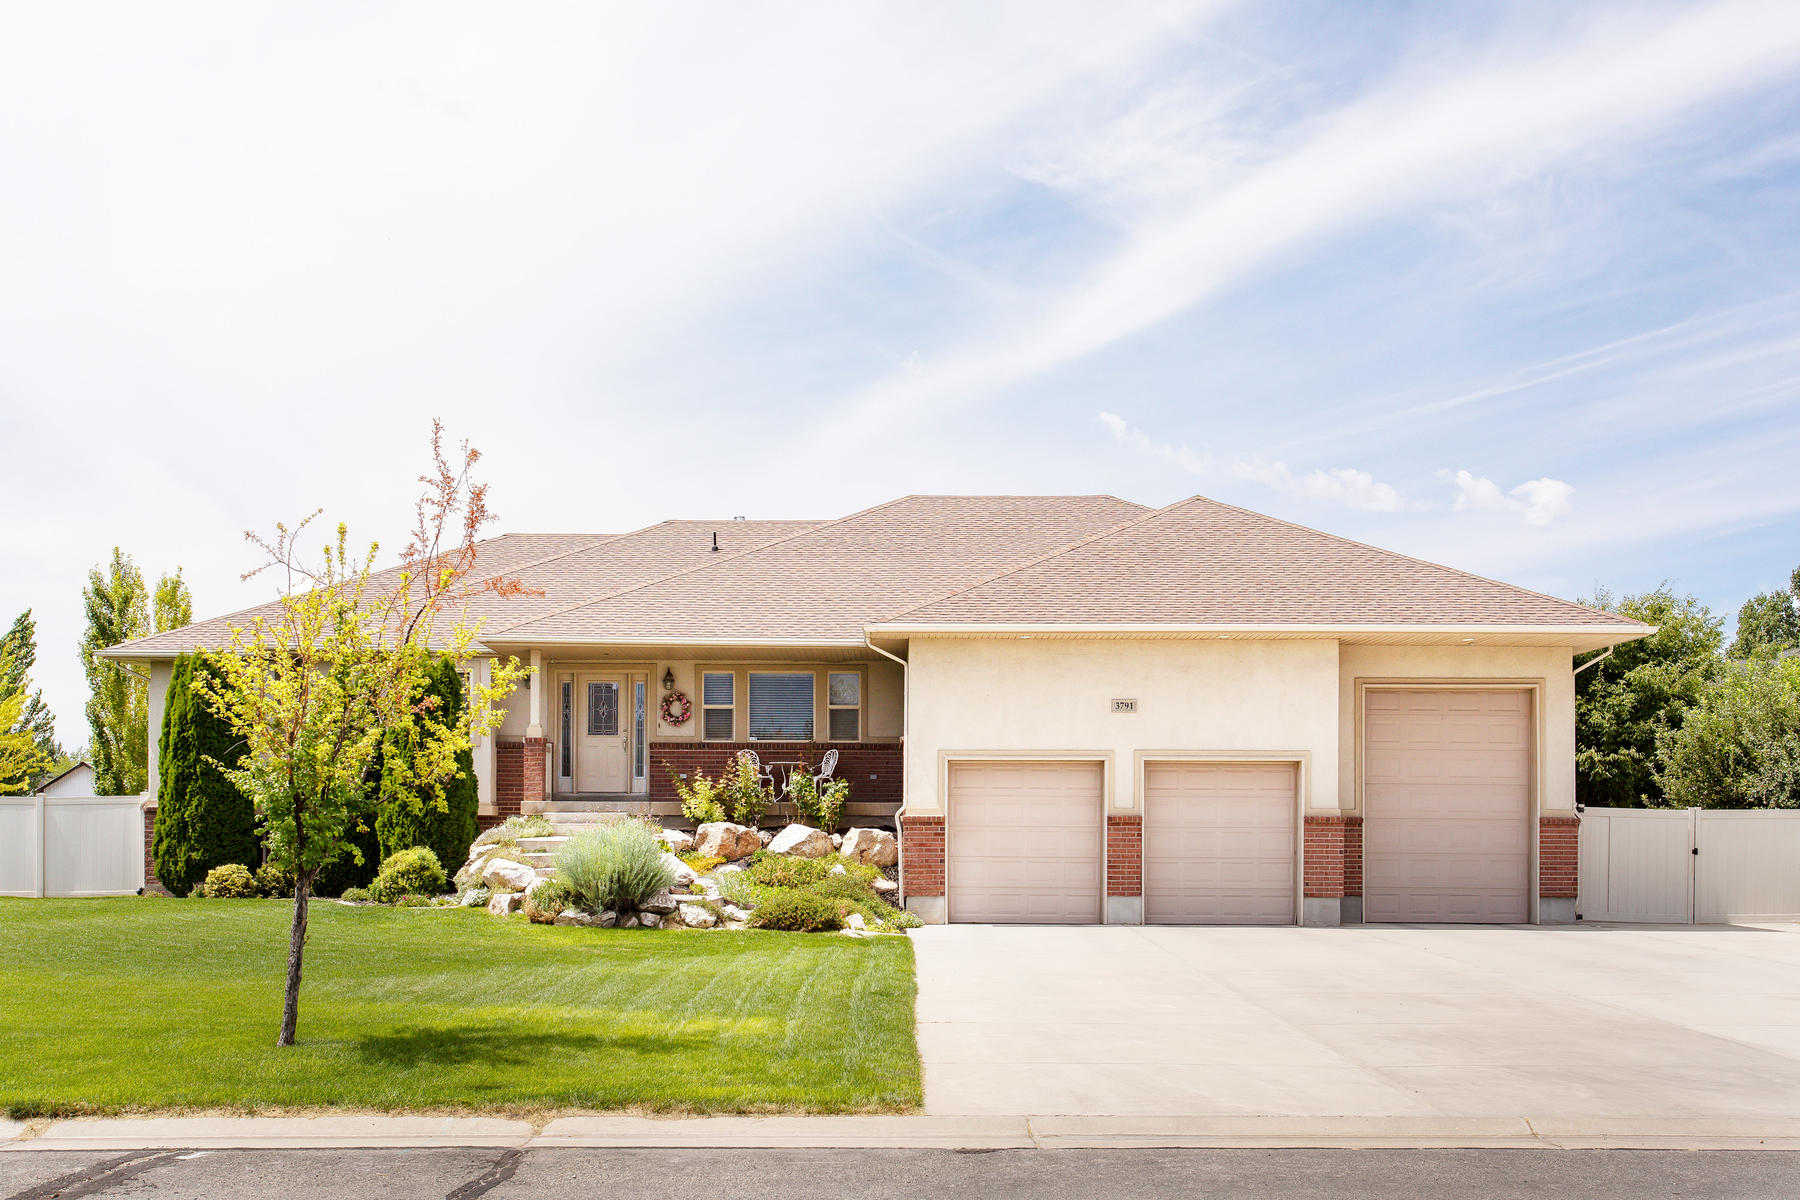 Single Family Homes for Sale at Standout Rambler 3791 South 3750 West, West Haven, Utah 84401 United States